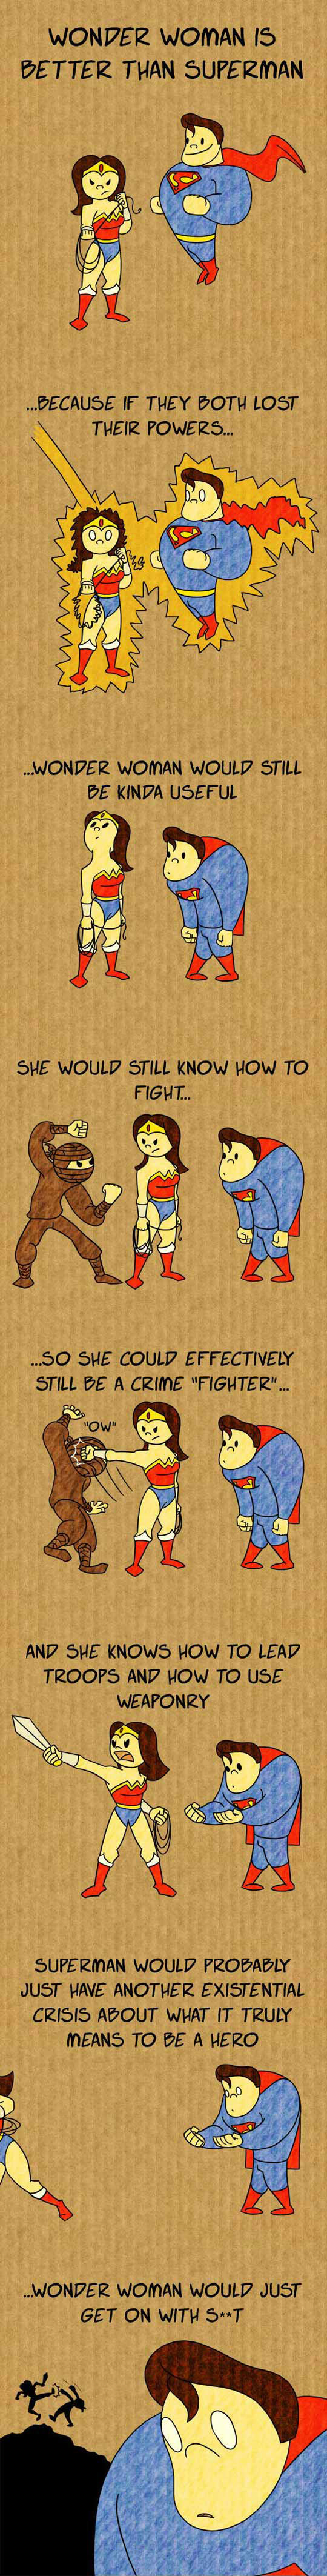 Wonder Woman And Super Man Compared